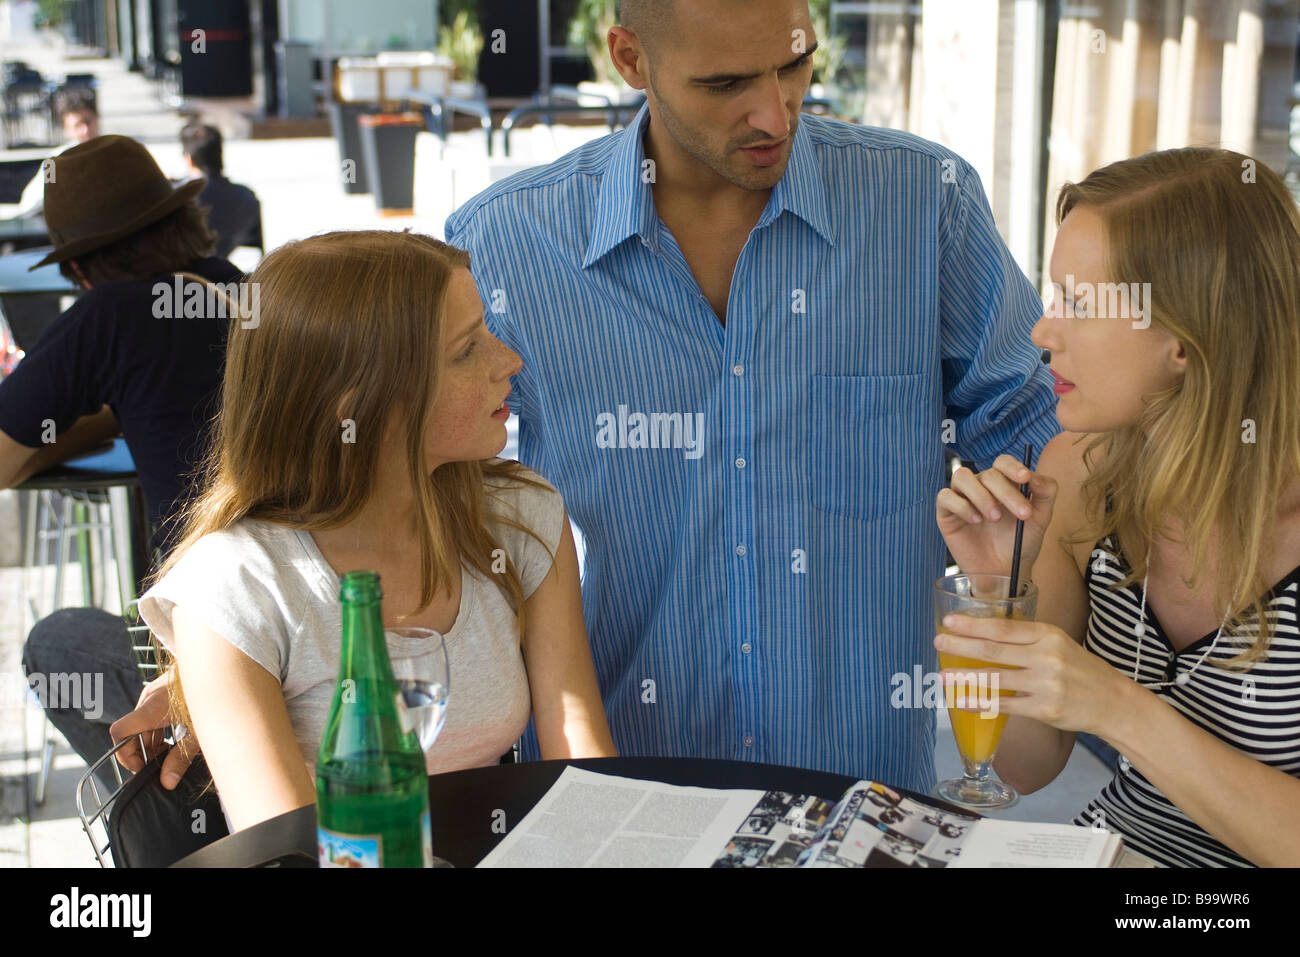 Man talking to two young women at outdoor cafe - Stock Image